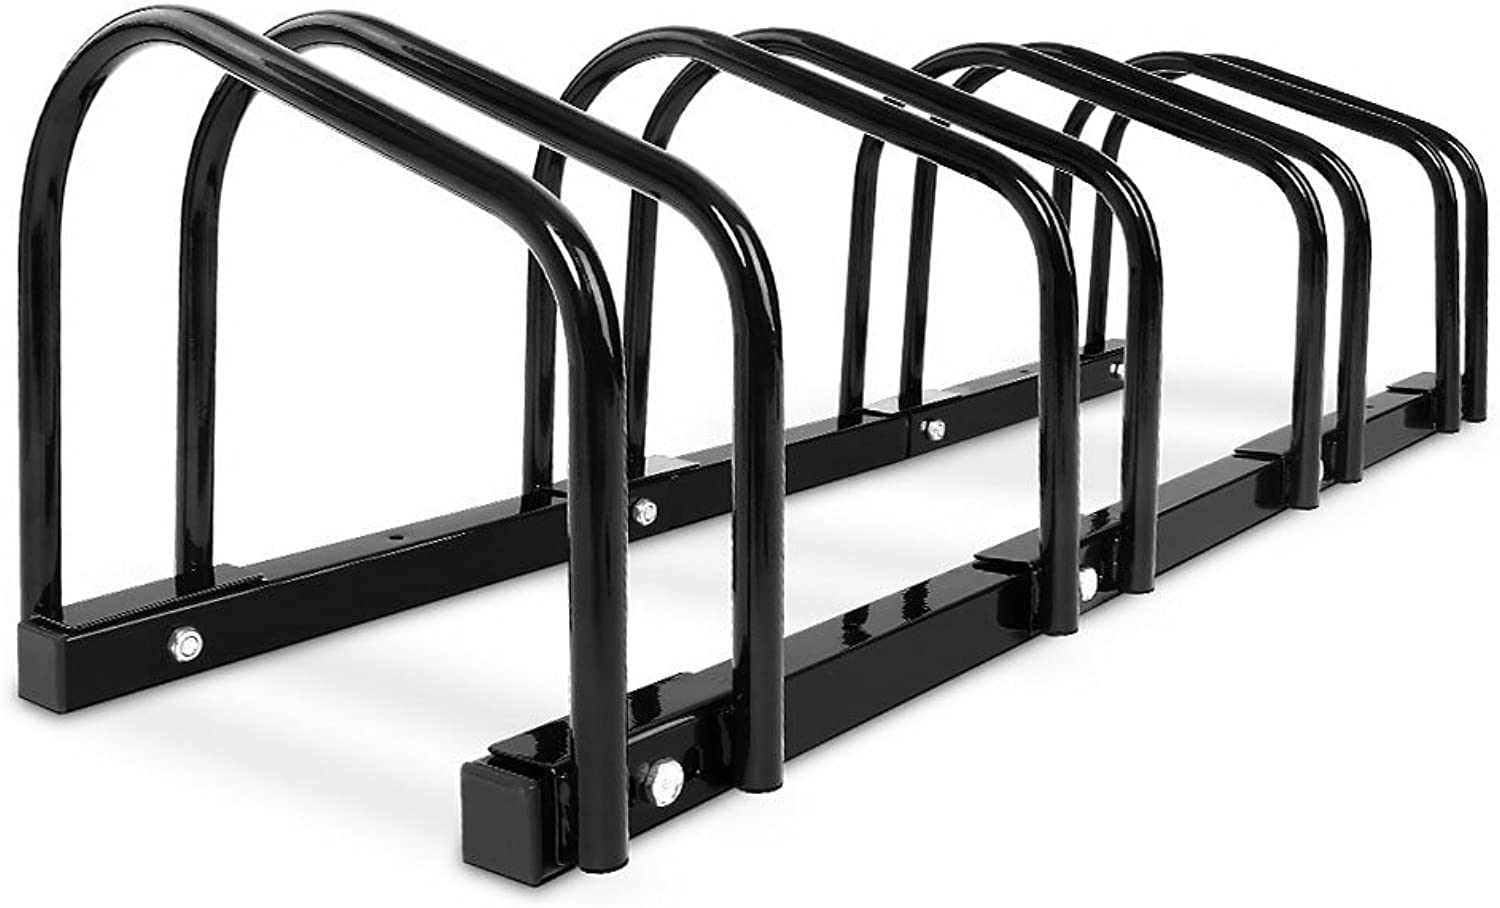 14 Bike Floor Parking Stand Instant Storage Rack Bicycle Cycling Car Carrier Portable Leans Against Wall FreeCombined